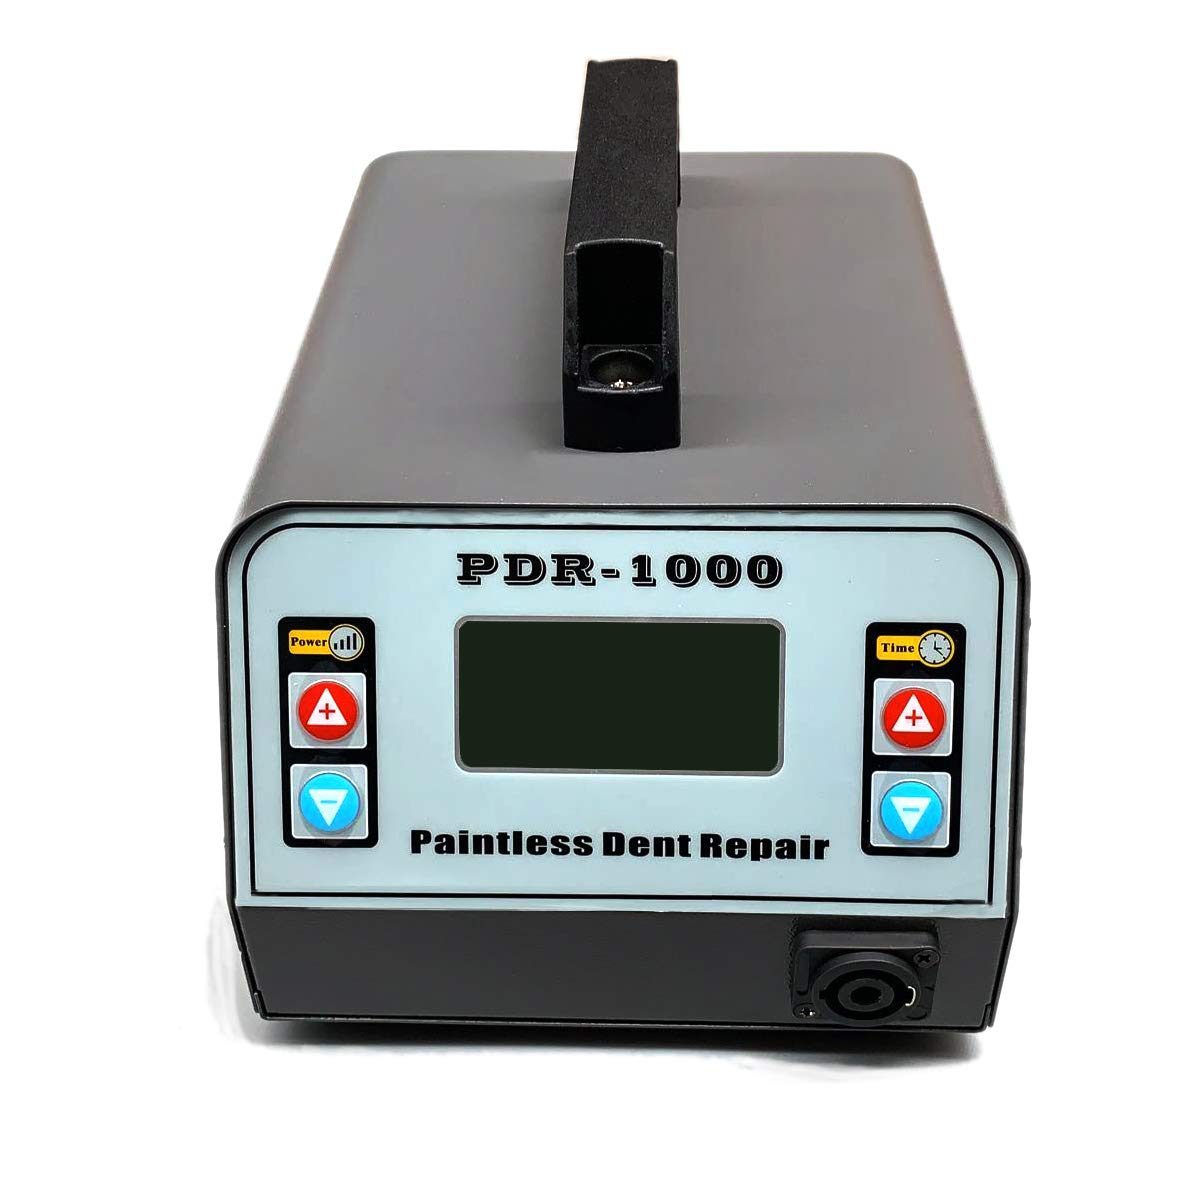 TABODD 1000W 110V Induction PDR Heater Machine Hot Box Car Paintless Dent Repair Tool Hot Box Removing Dents Sheet by TABODD (Image #2)